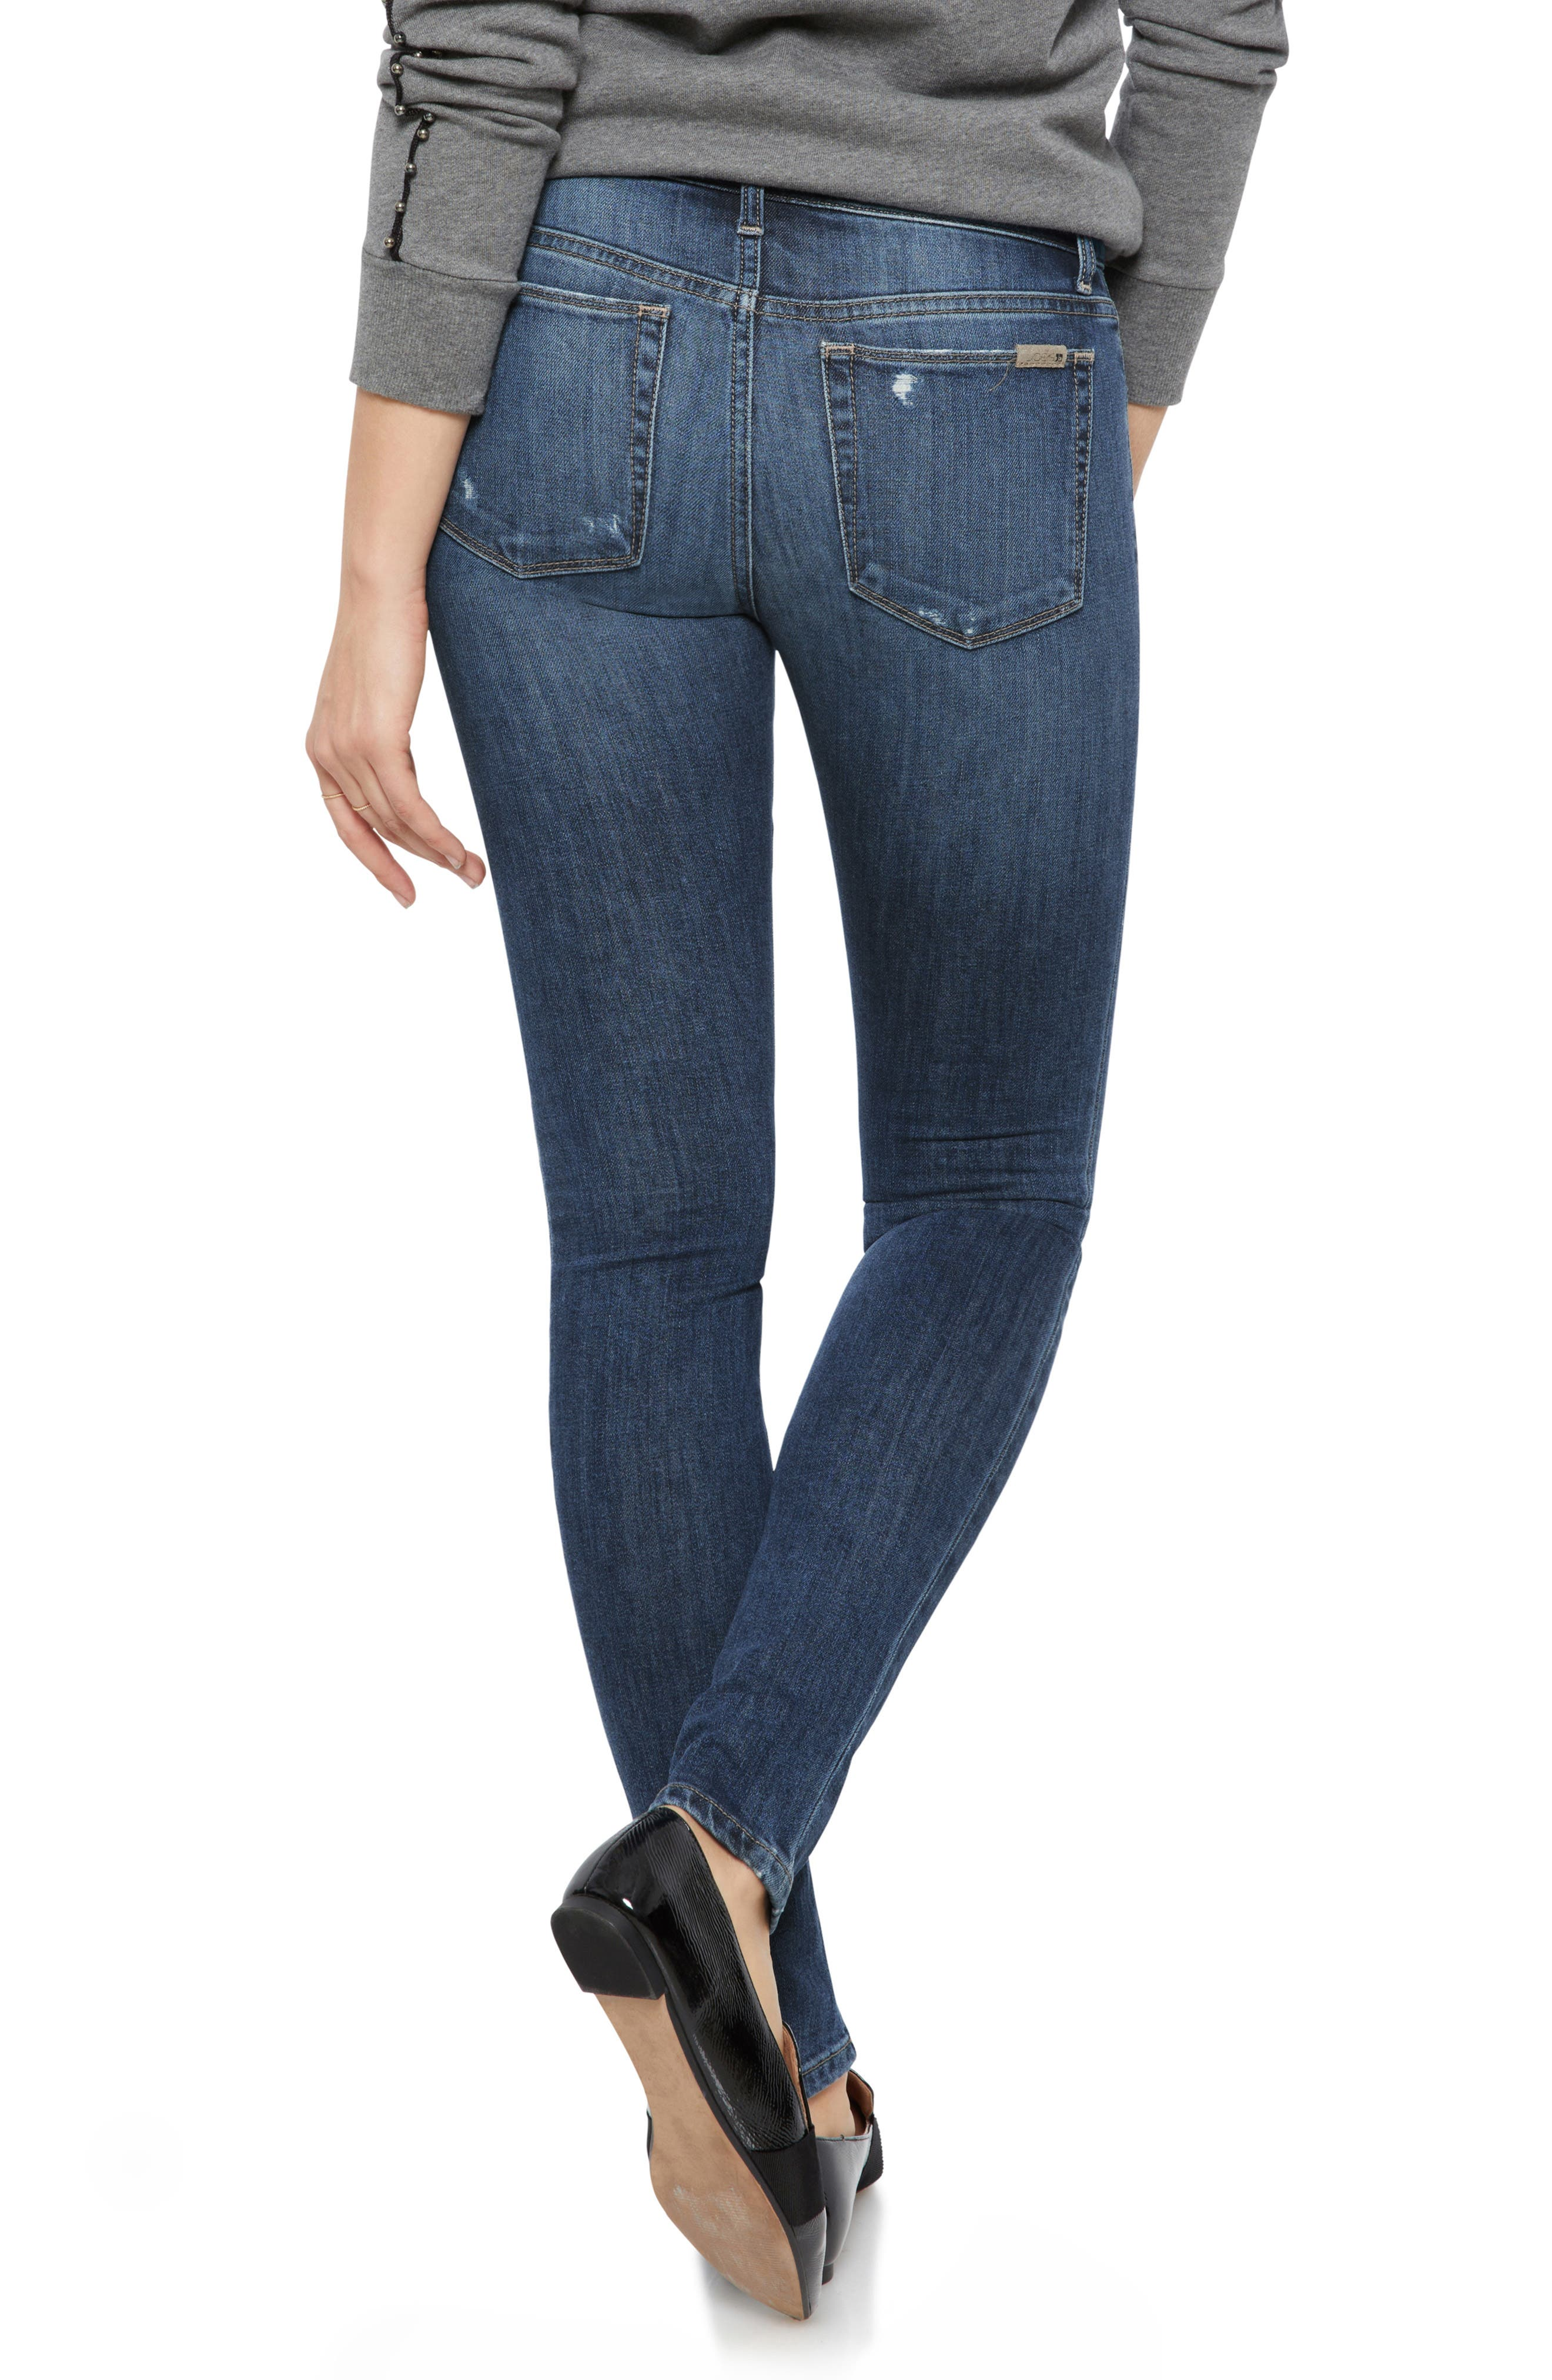 Icon Skinny Jeans,                             Alternate thumbnail 2, color,                             421